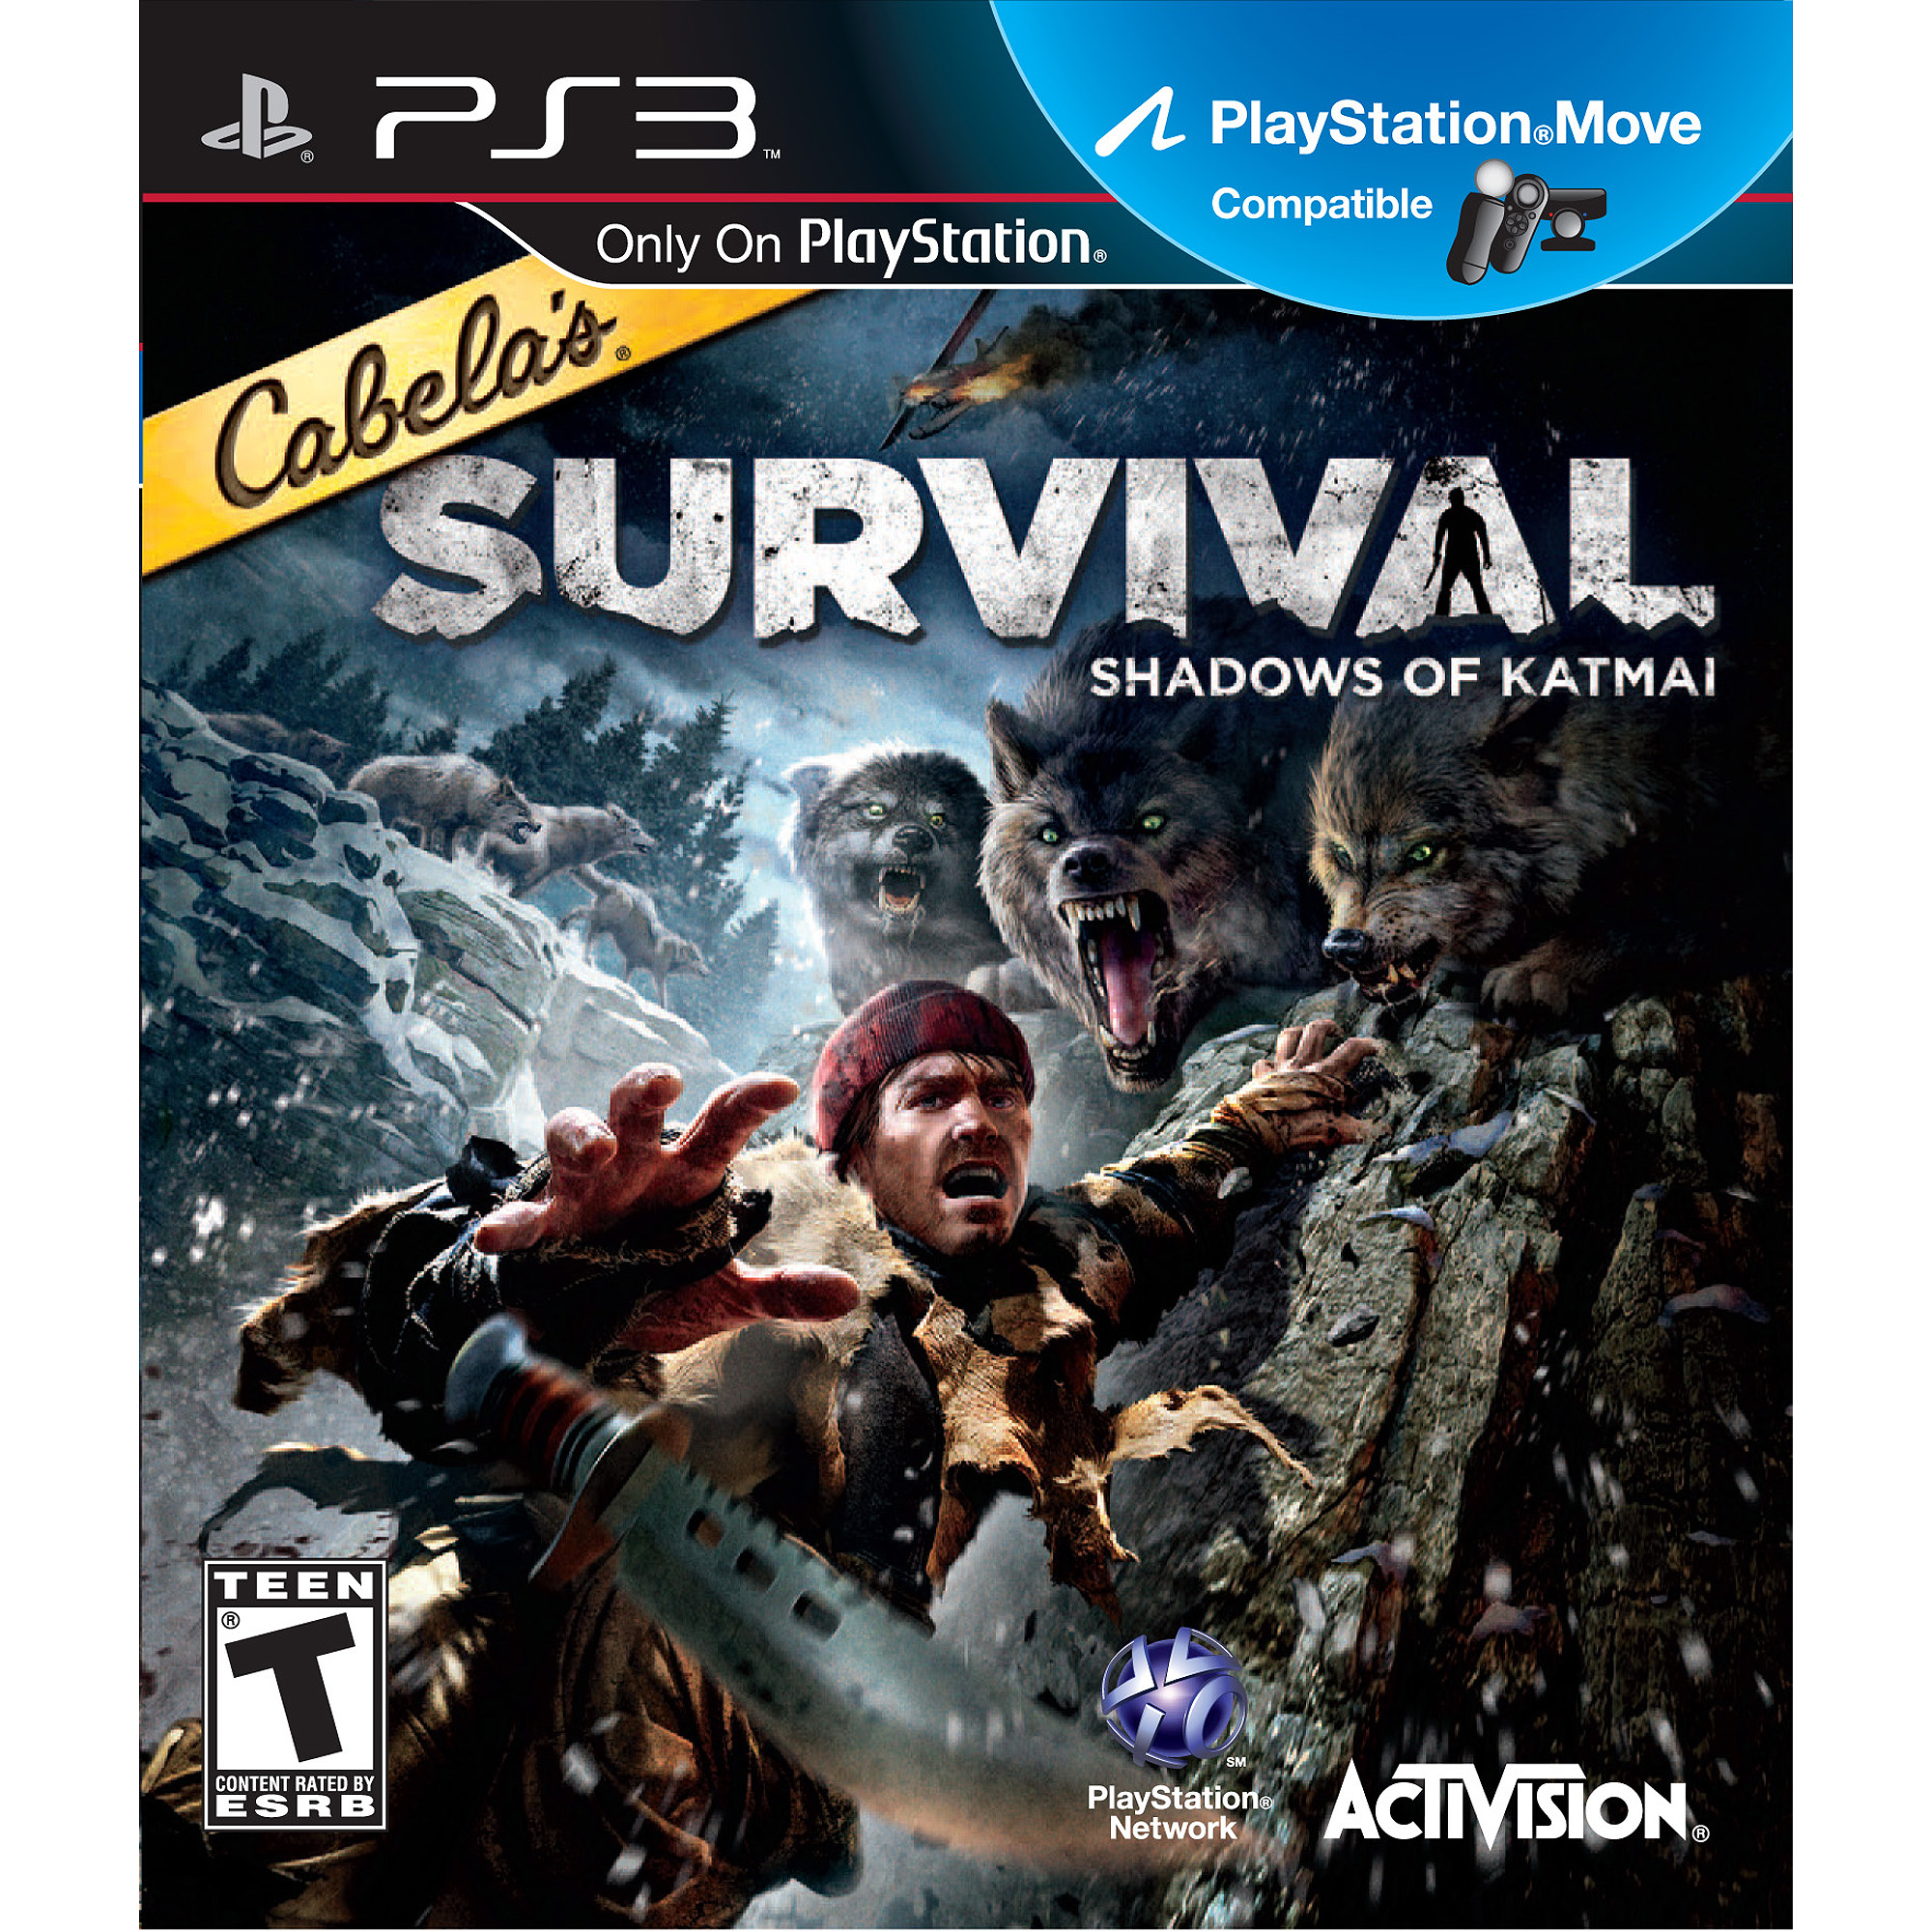 Cabela's Survival Adventures: Shadows of Katmai (PS3)